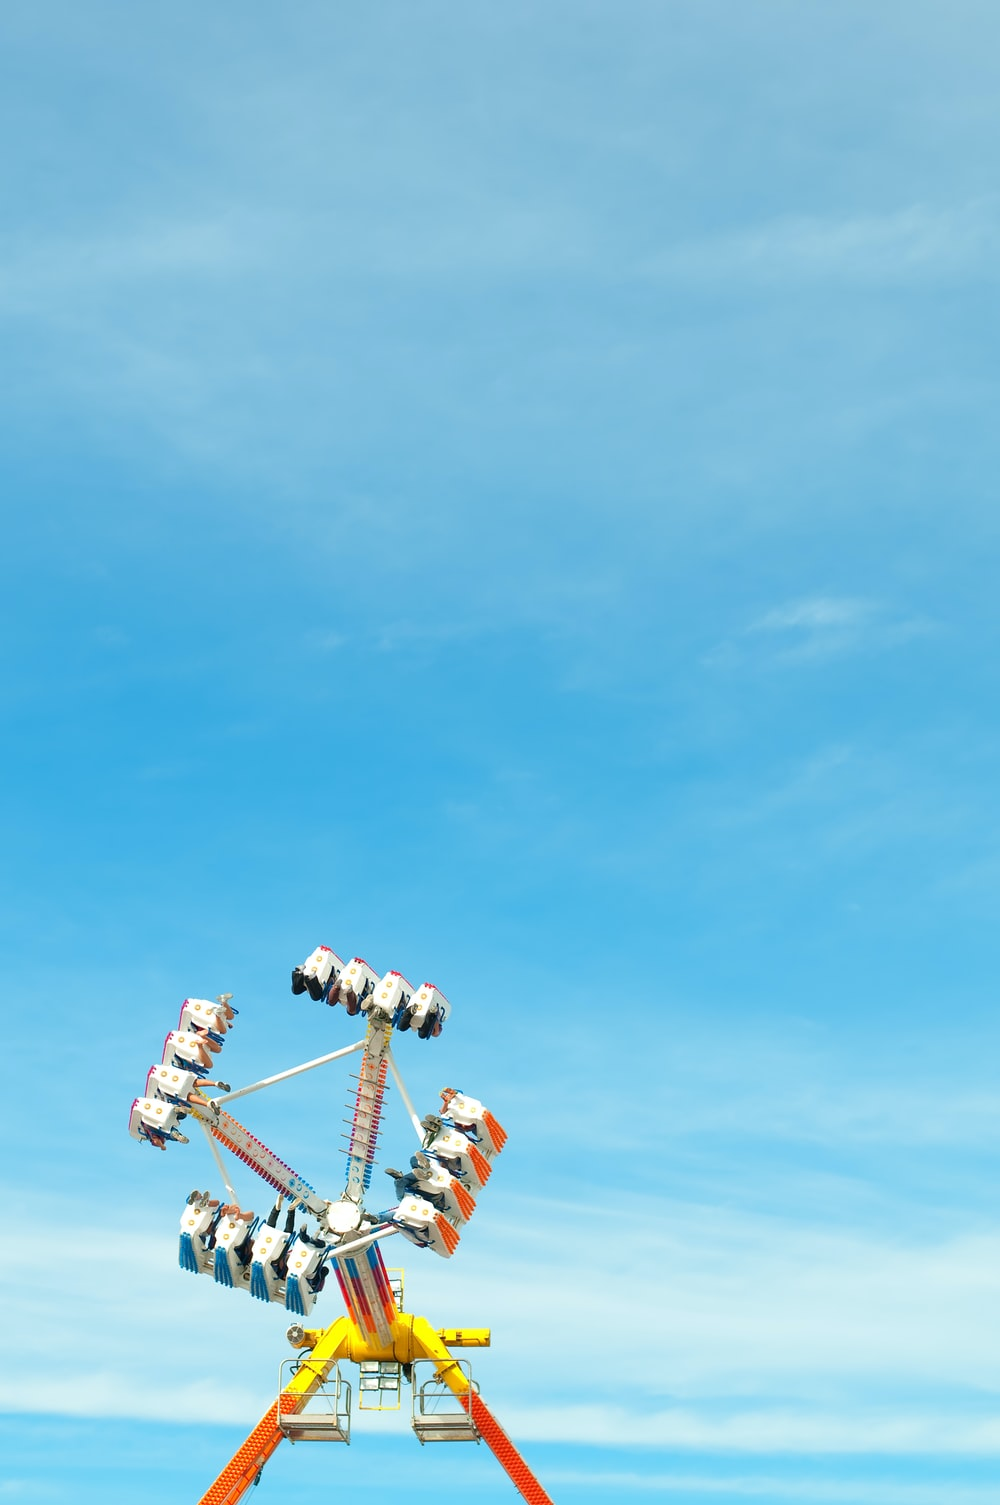 photo of yellow, orange, and blue amusement park ride under clear blue sky